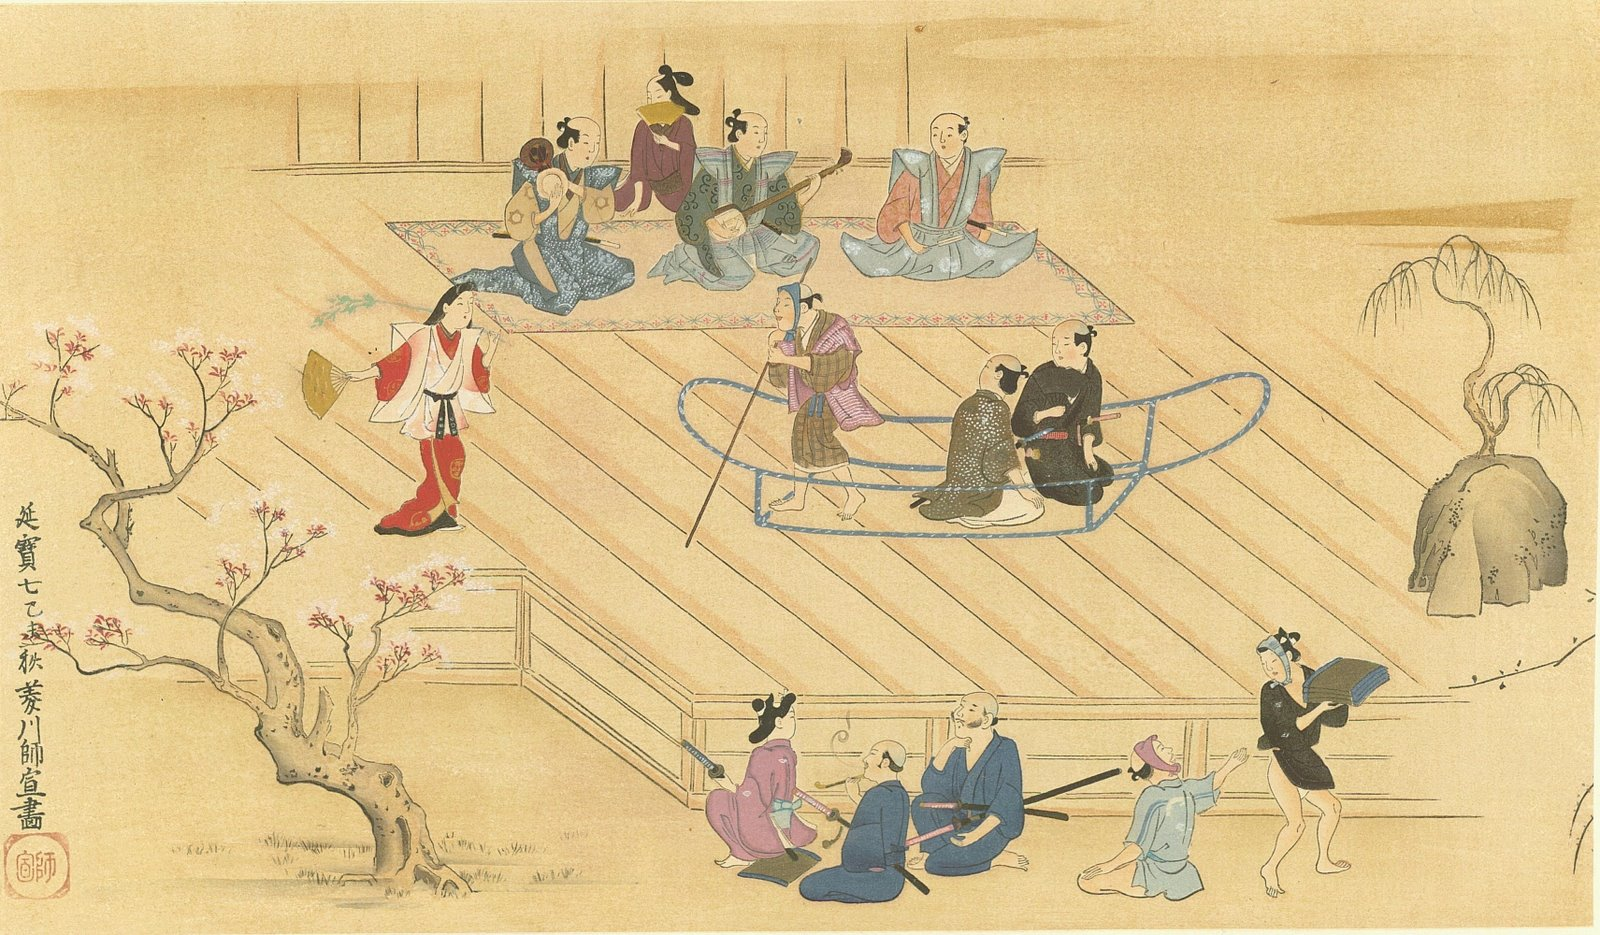 [The+Sumida-Gawa,+A+Theatrical+Picture+by+Moronobu+Hishikawa+0154-lg.jpg]